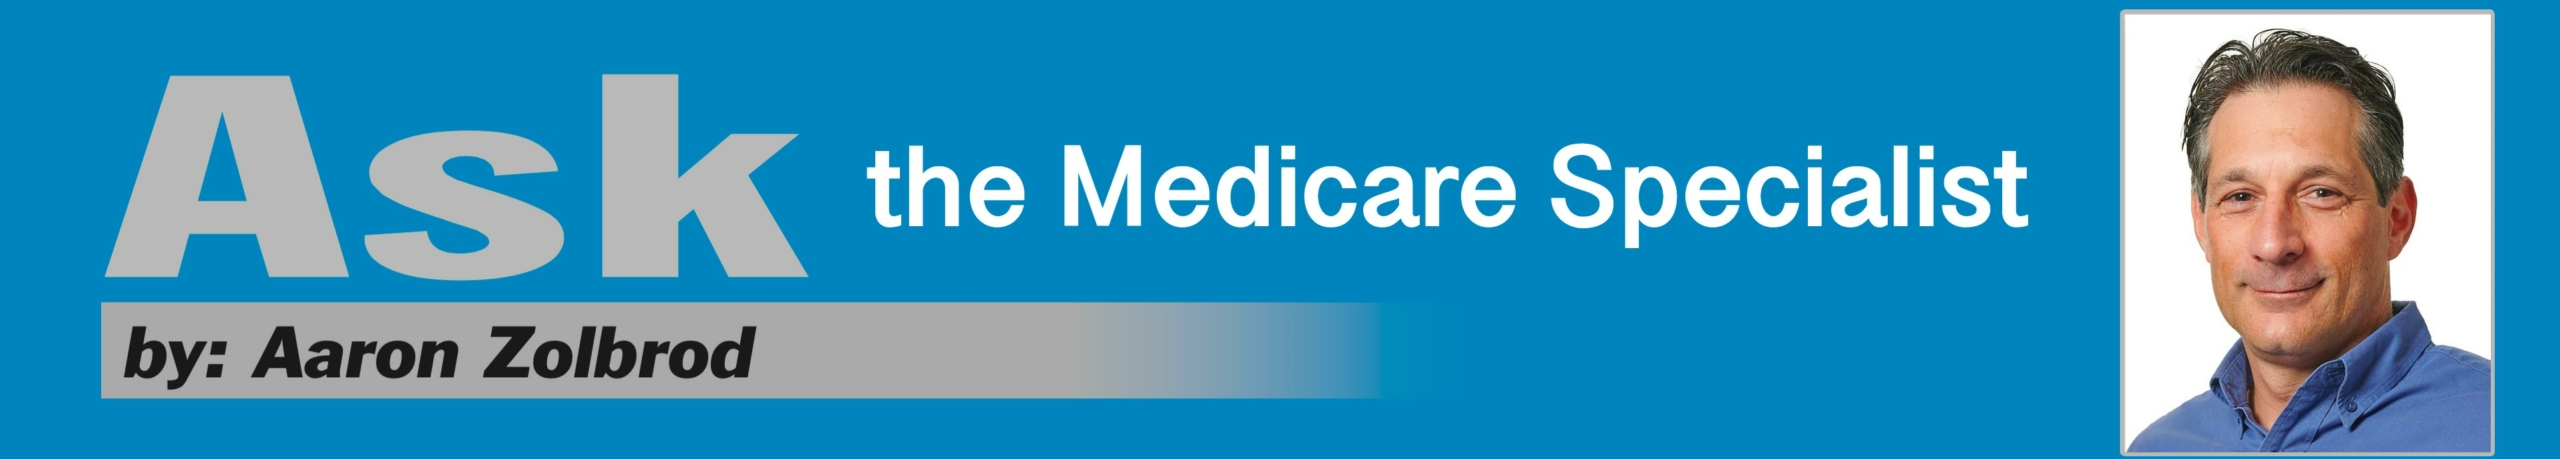 Ask the Medicare Specialist